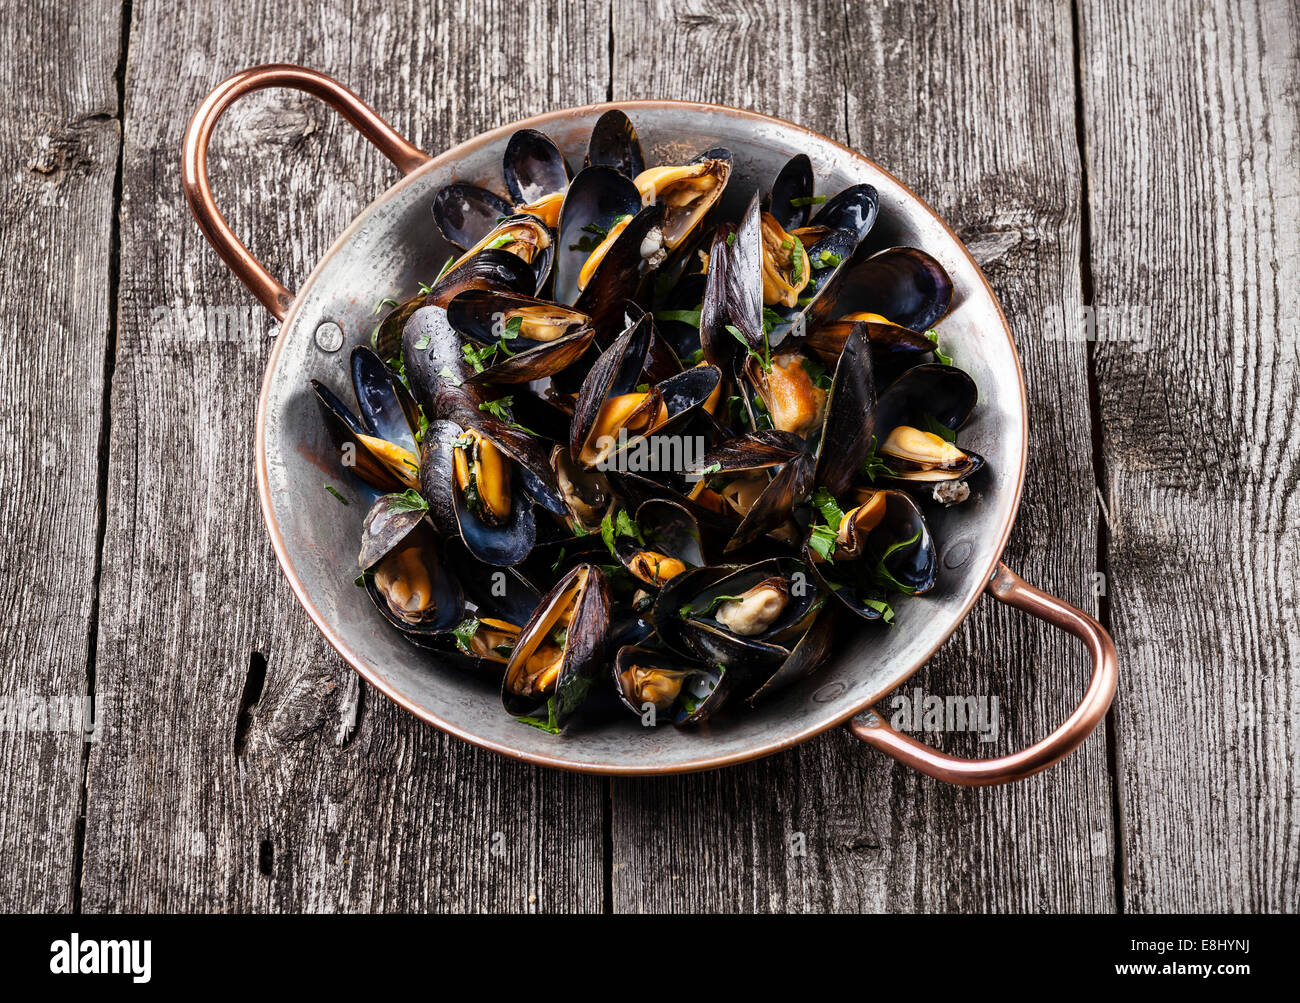 Boiled mussels in copper cooking dish on dark wooden background Stock Photo